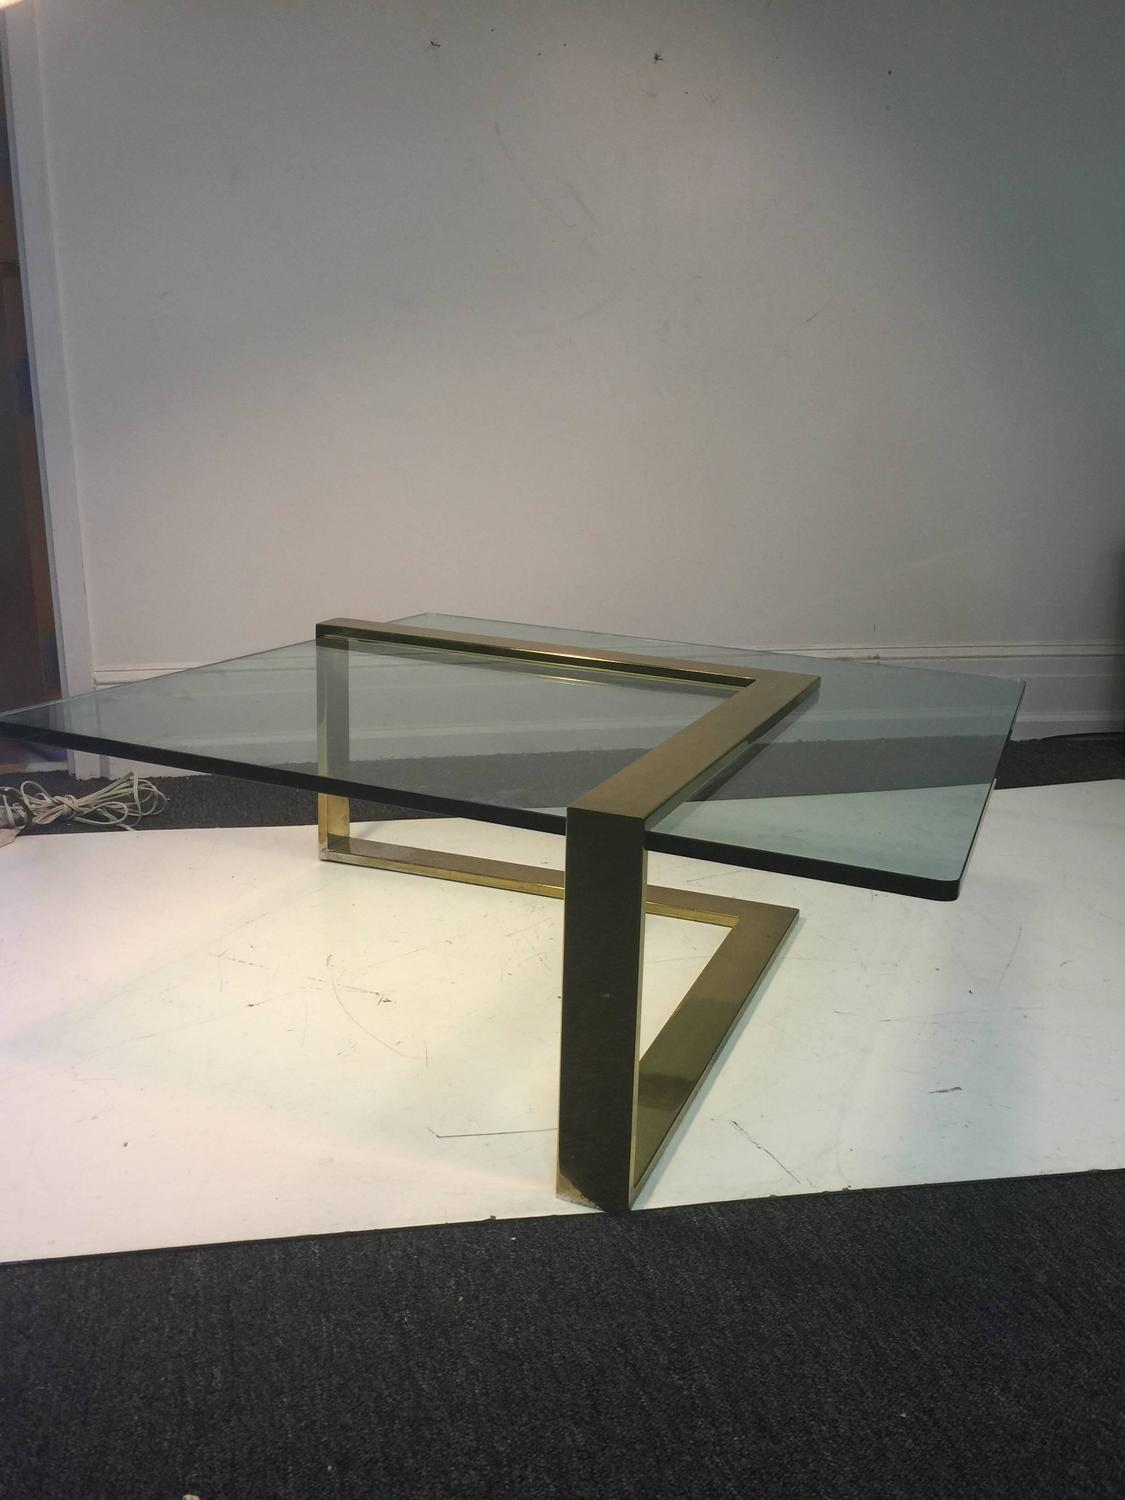 sensational l shape coffee cocktail table in brass by pace collection for sale at 1stdibs. Black Bedroom Furniture Sets. Home Design Ideas